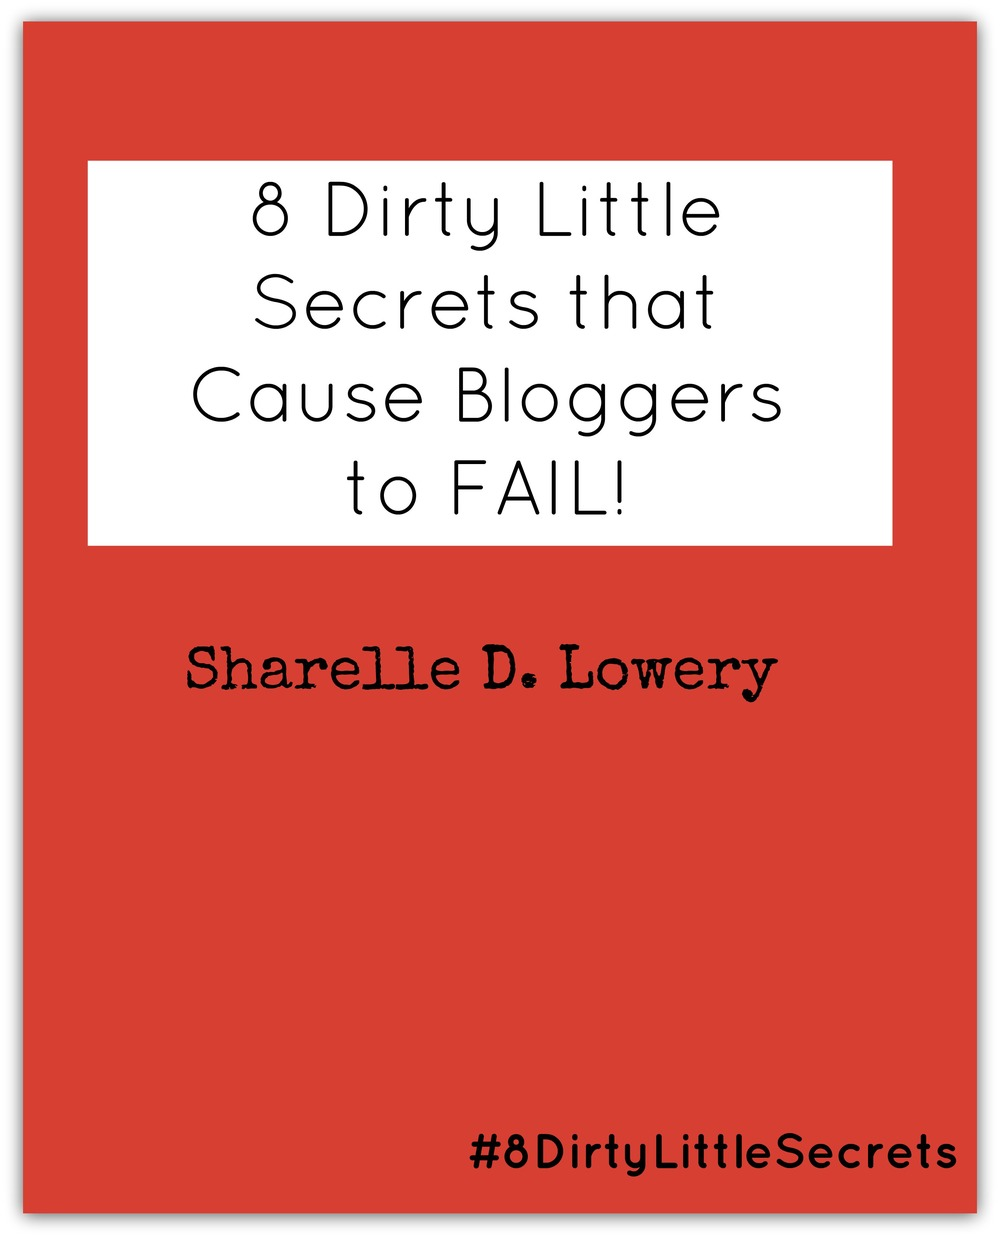 8-dirty-little-secrets-that-cause-bloggers-to fail.jpg